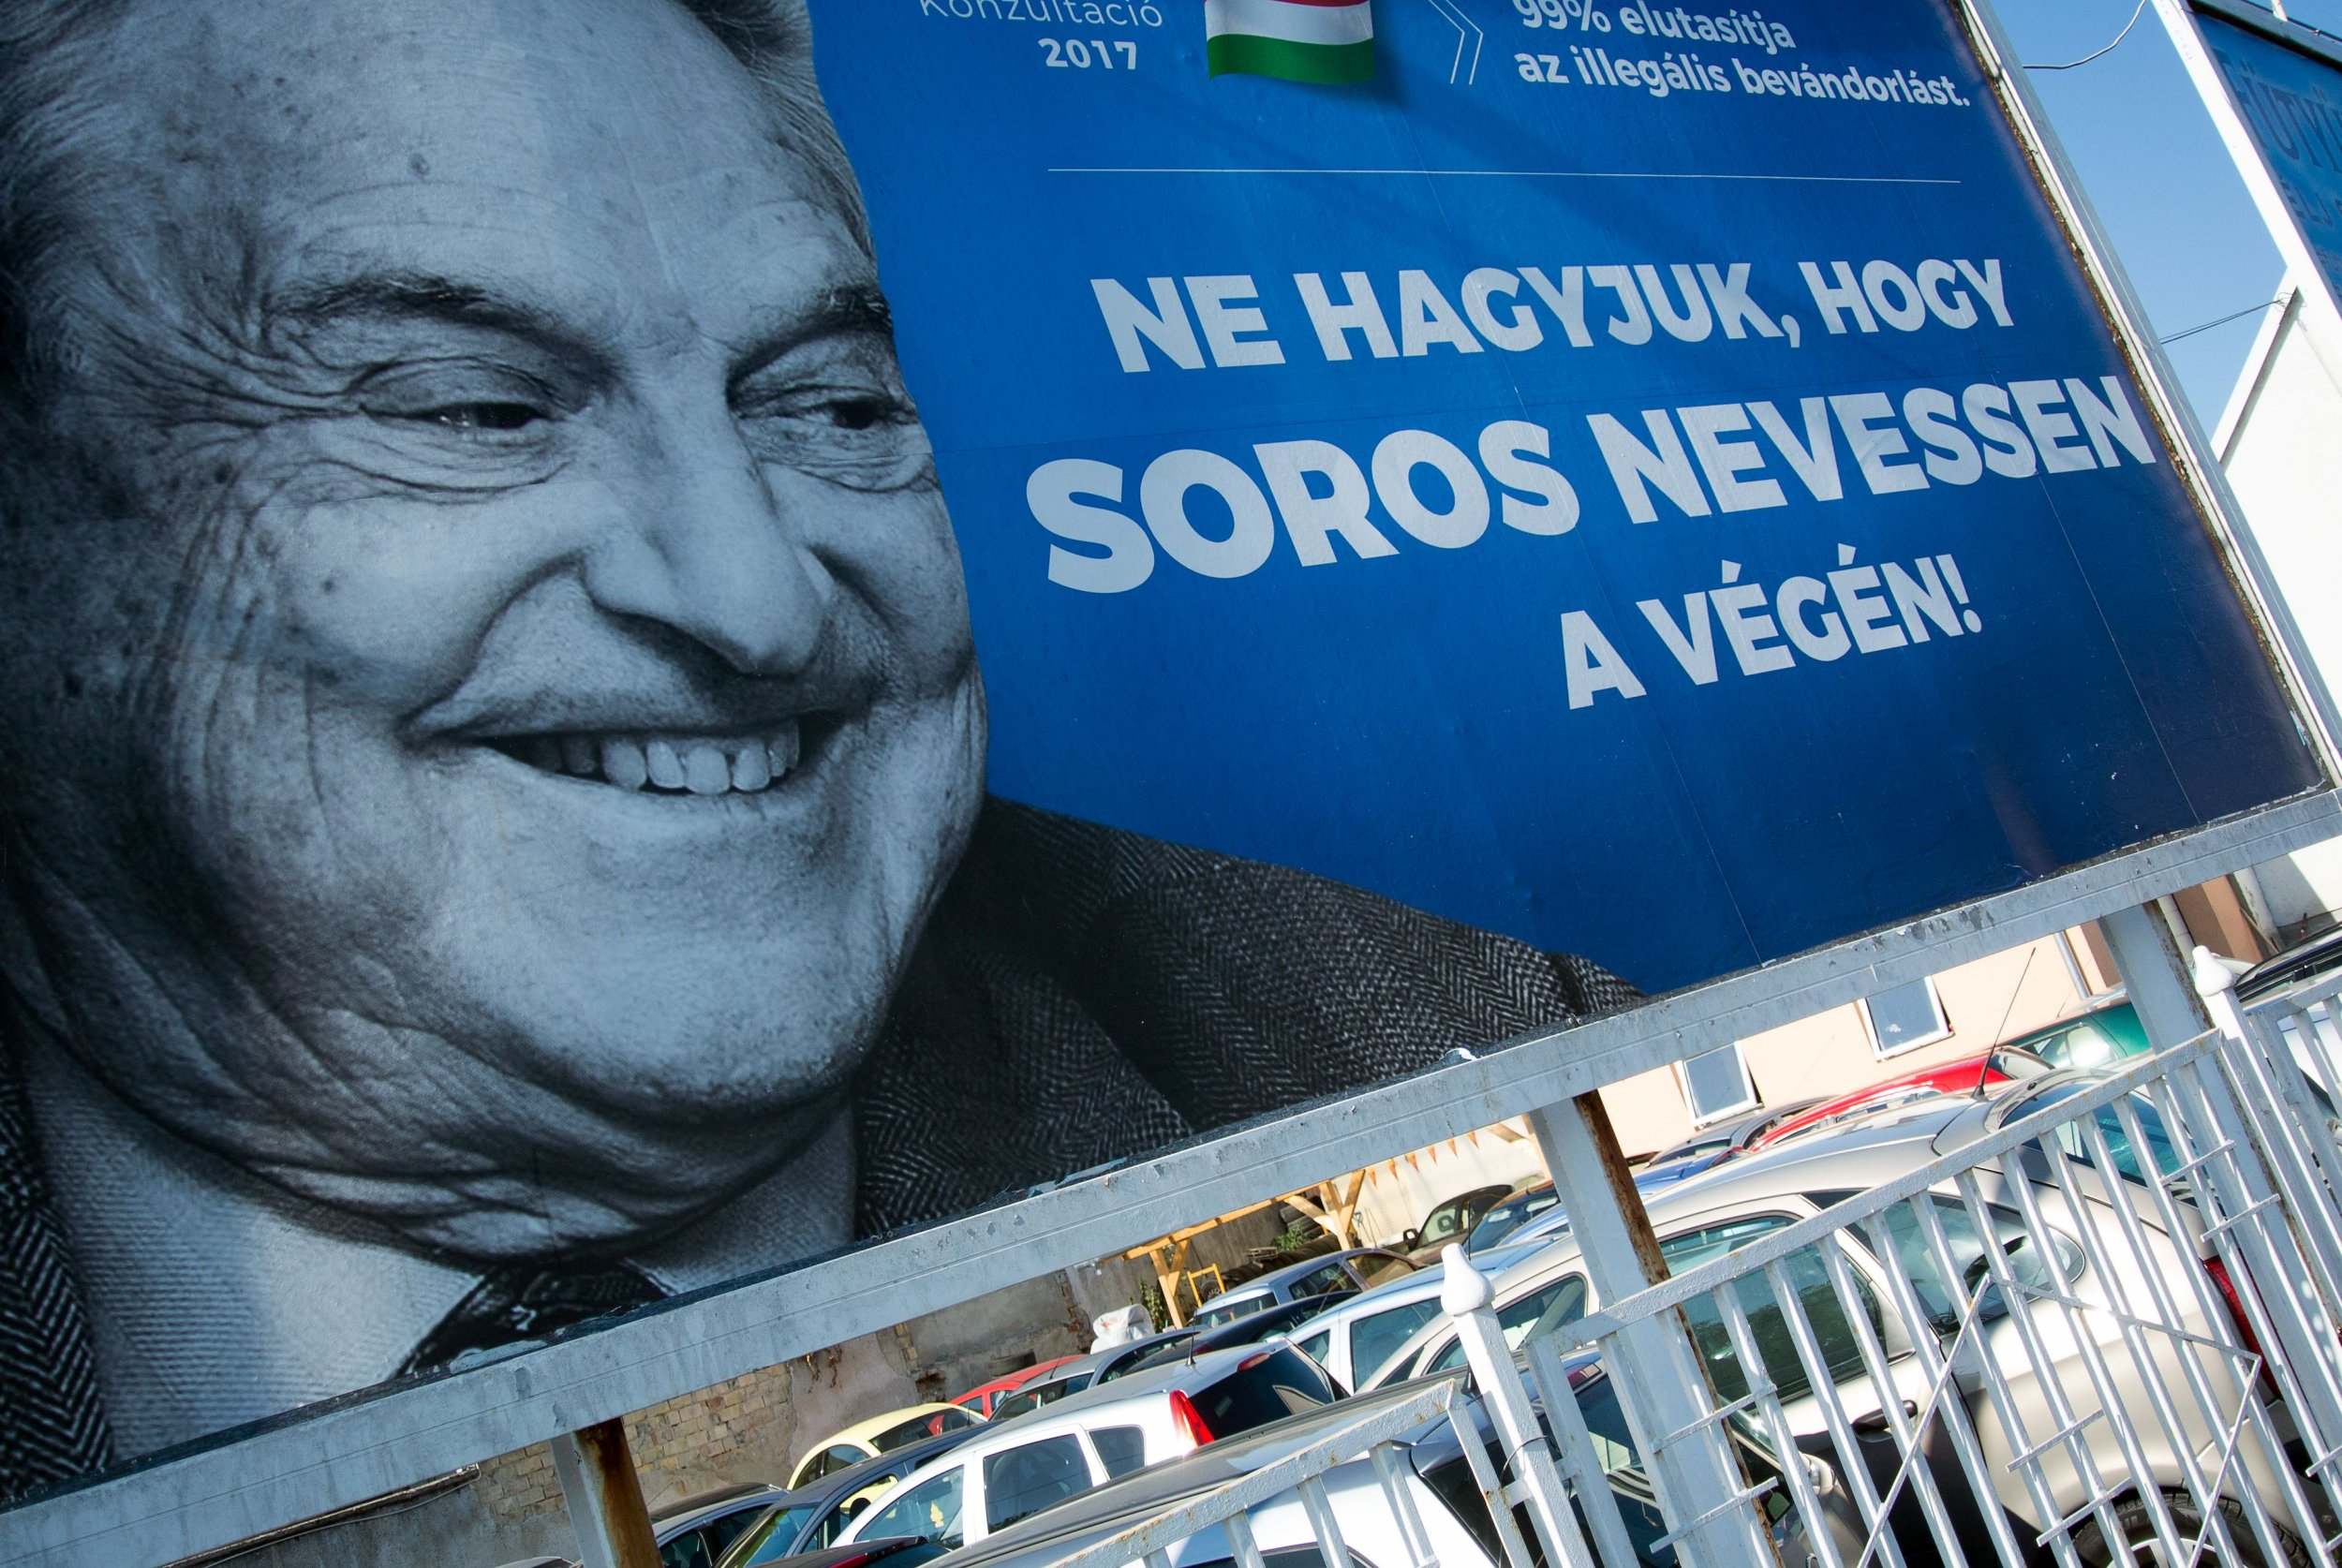 Hungary's George Soros posters